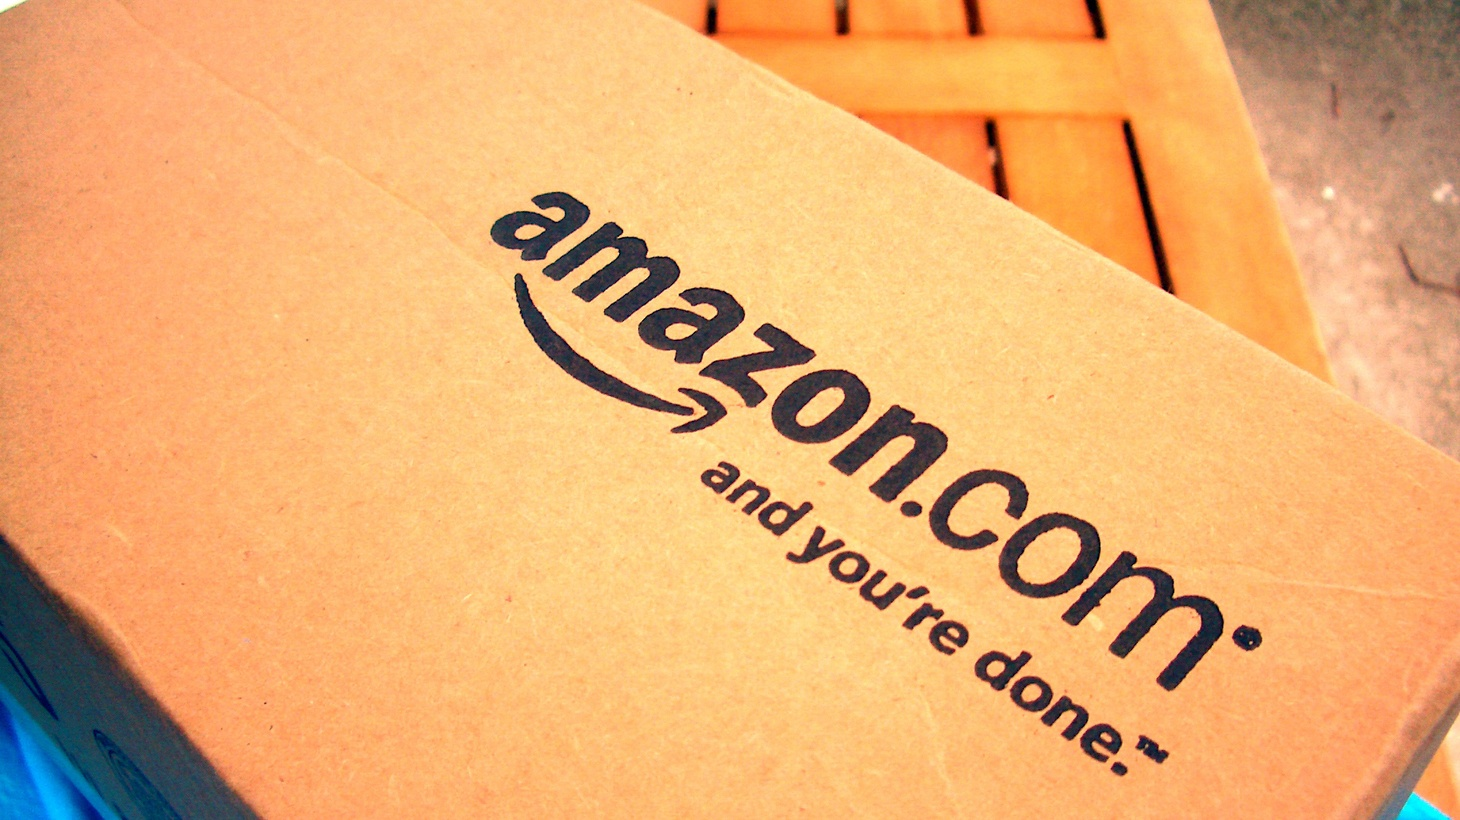 It's Amazon's world now. What began 23 years ago as an online bookstore - a romantic experiment, it seemed at the time - has become an absolute gamechanger. Retail stores and workers now face a long list of challenges. With more than a half million retail jobs gone since 2001, the future of retail might predict the future of America's workforce as well. León Krauze guest hosts.